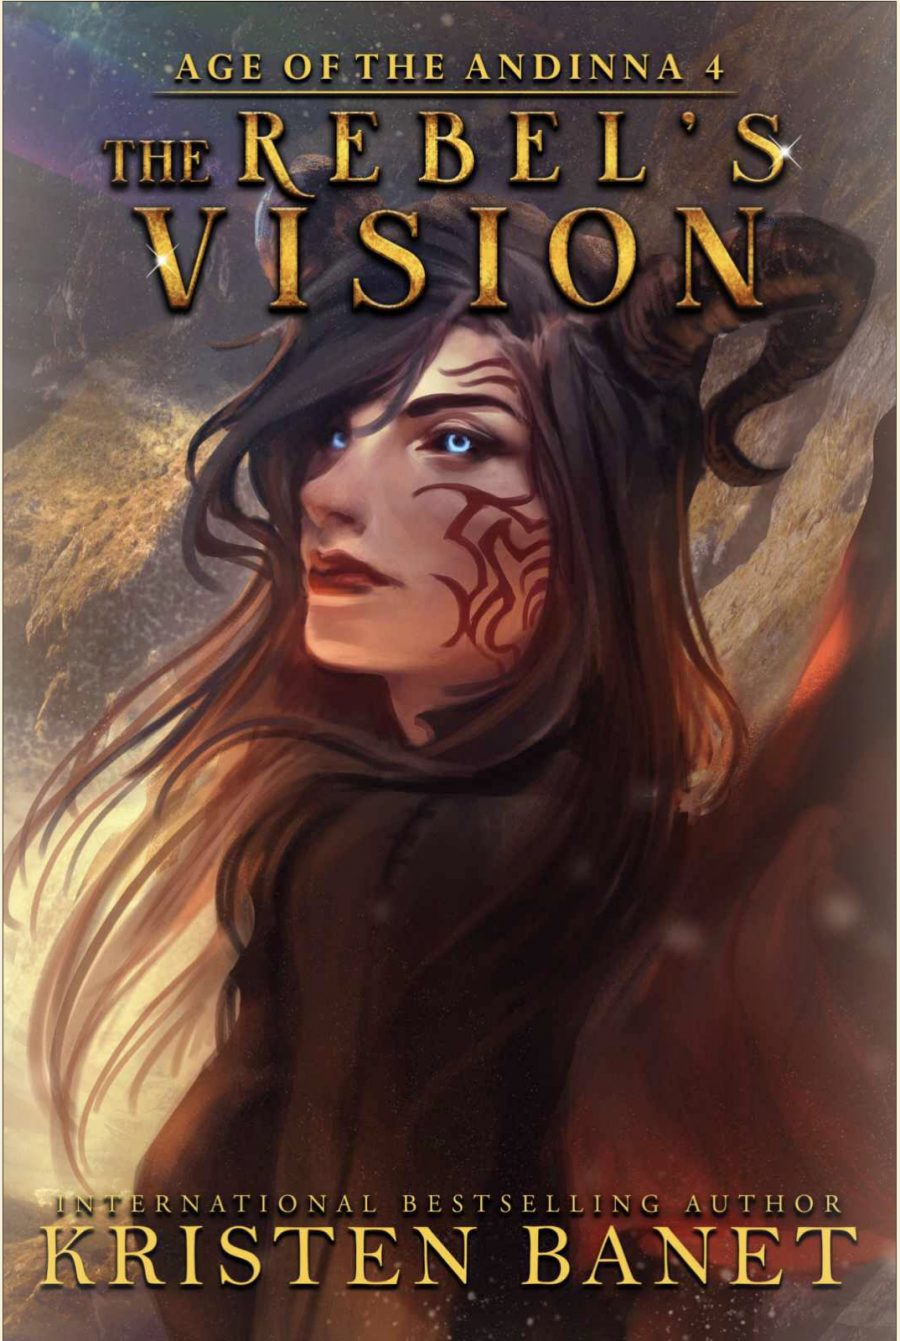 The Rebel's Vision by Kristen Banet - A Book Reivew #BookReview #EpicFantasy #5Stars #SlowBurn #RH #Fantasy #Book4 #KindleUnlimited #KU